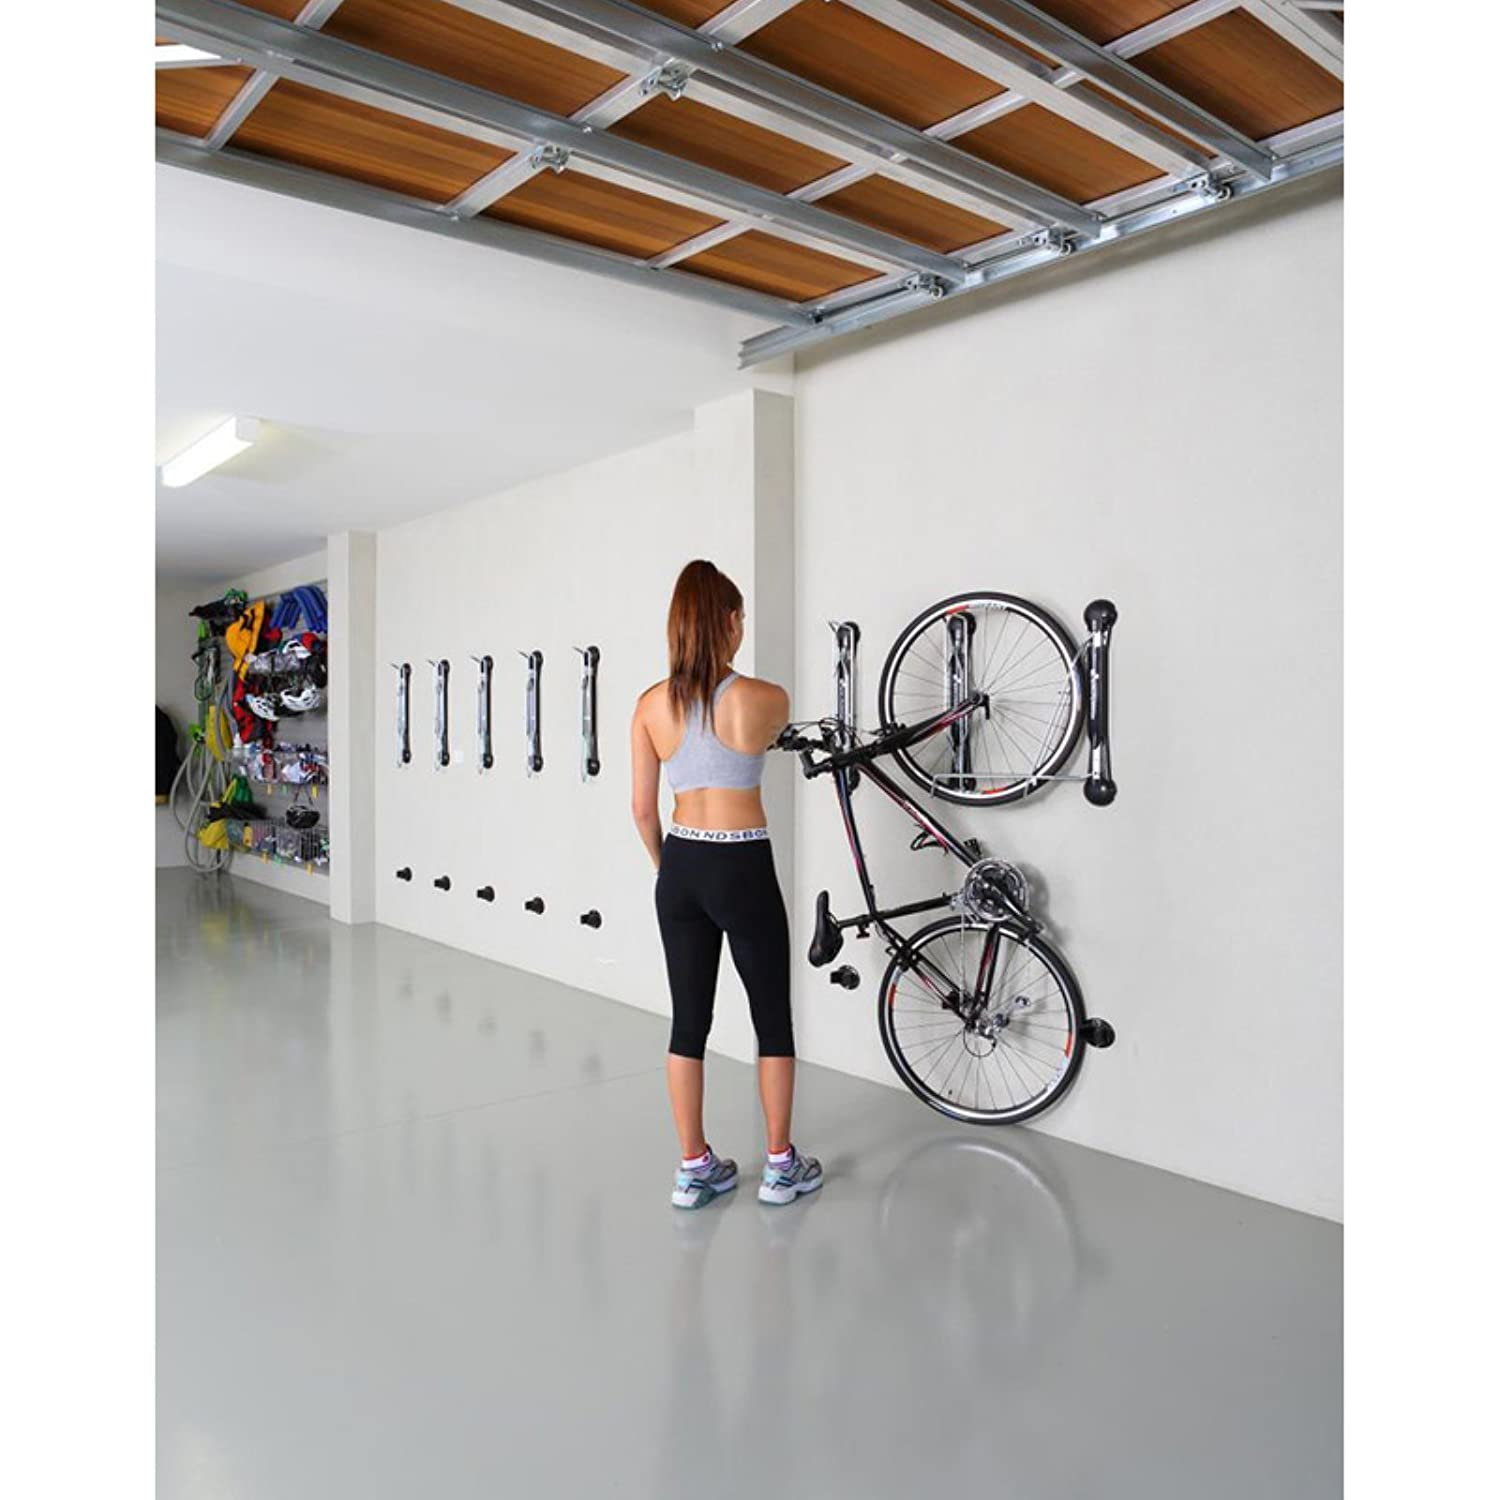 Amazon gear up steady rack 1 bike vertical storage rack amazon gear up steady rack 1 bike vertical storage rack black one size sports outdoors magicingreecefo Gallery